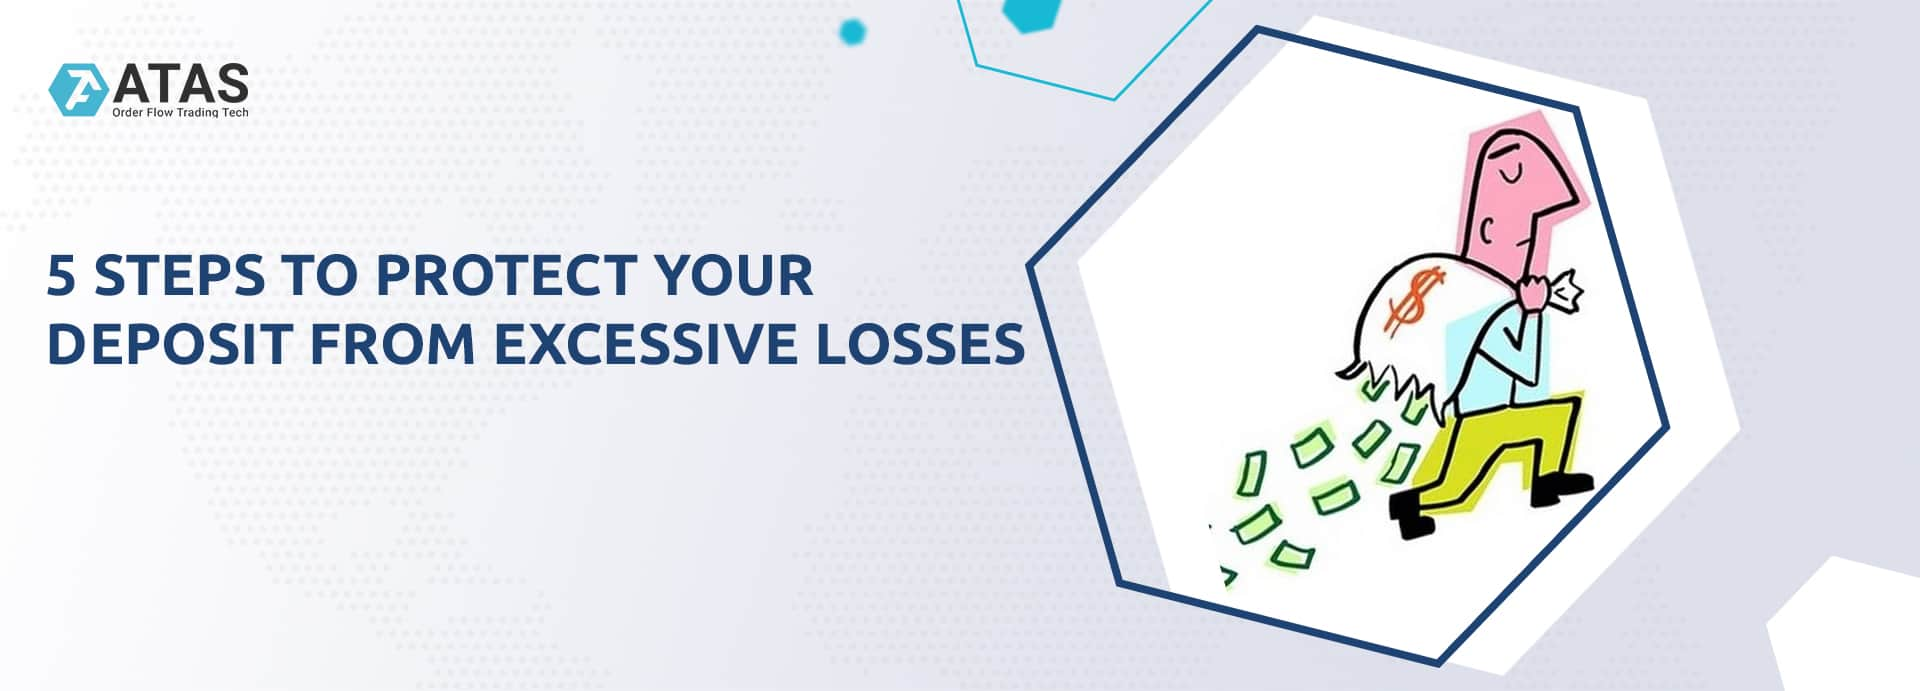 5 steps to protect your deposit from excessive losses